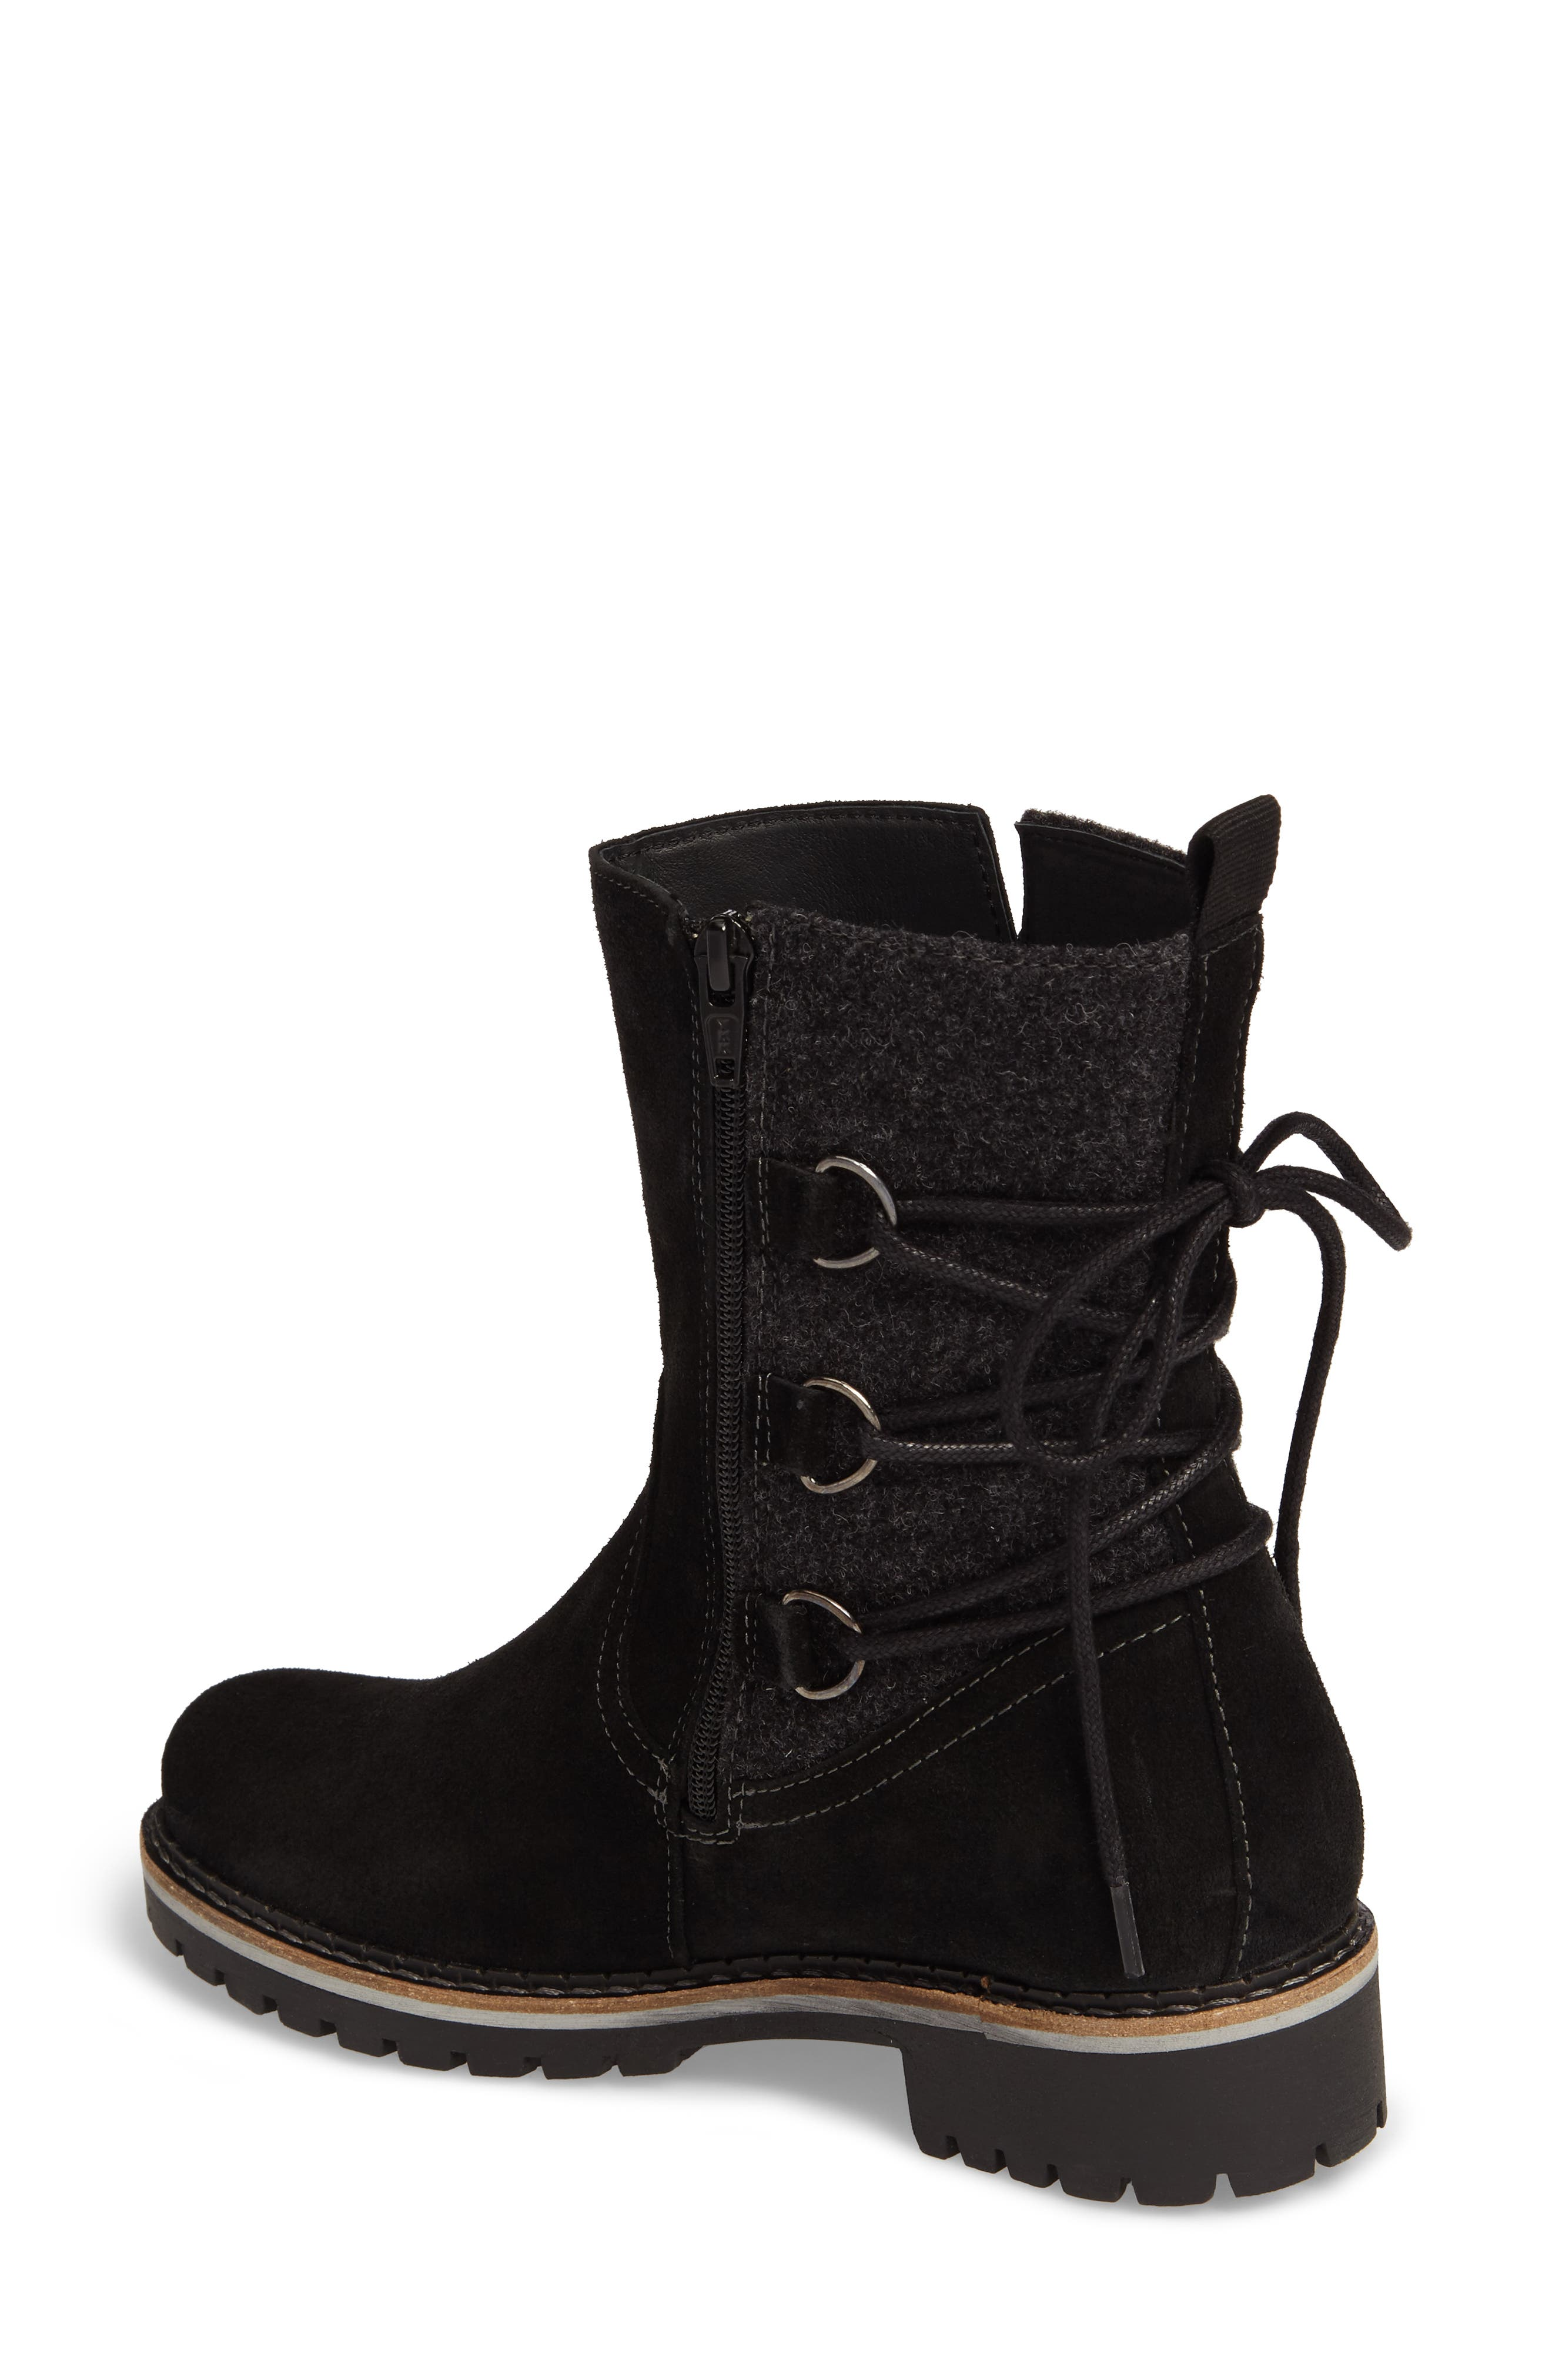 Cascade Waterproof Boot,                             Alternate thumbnail 3, color,